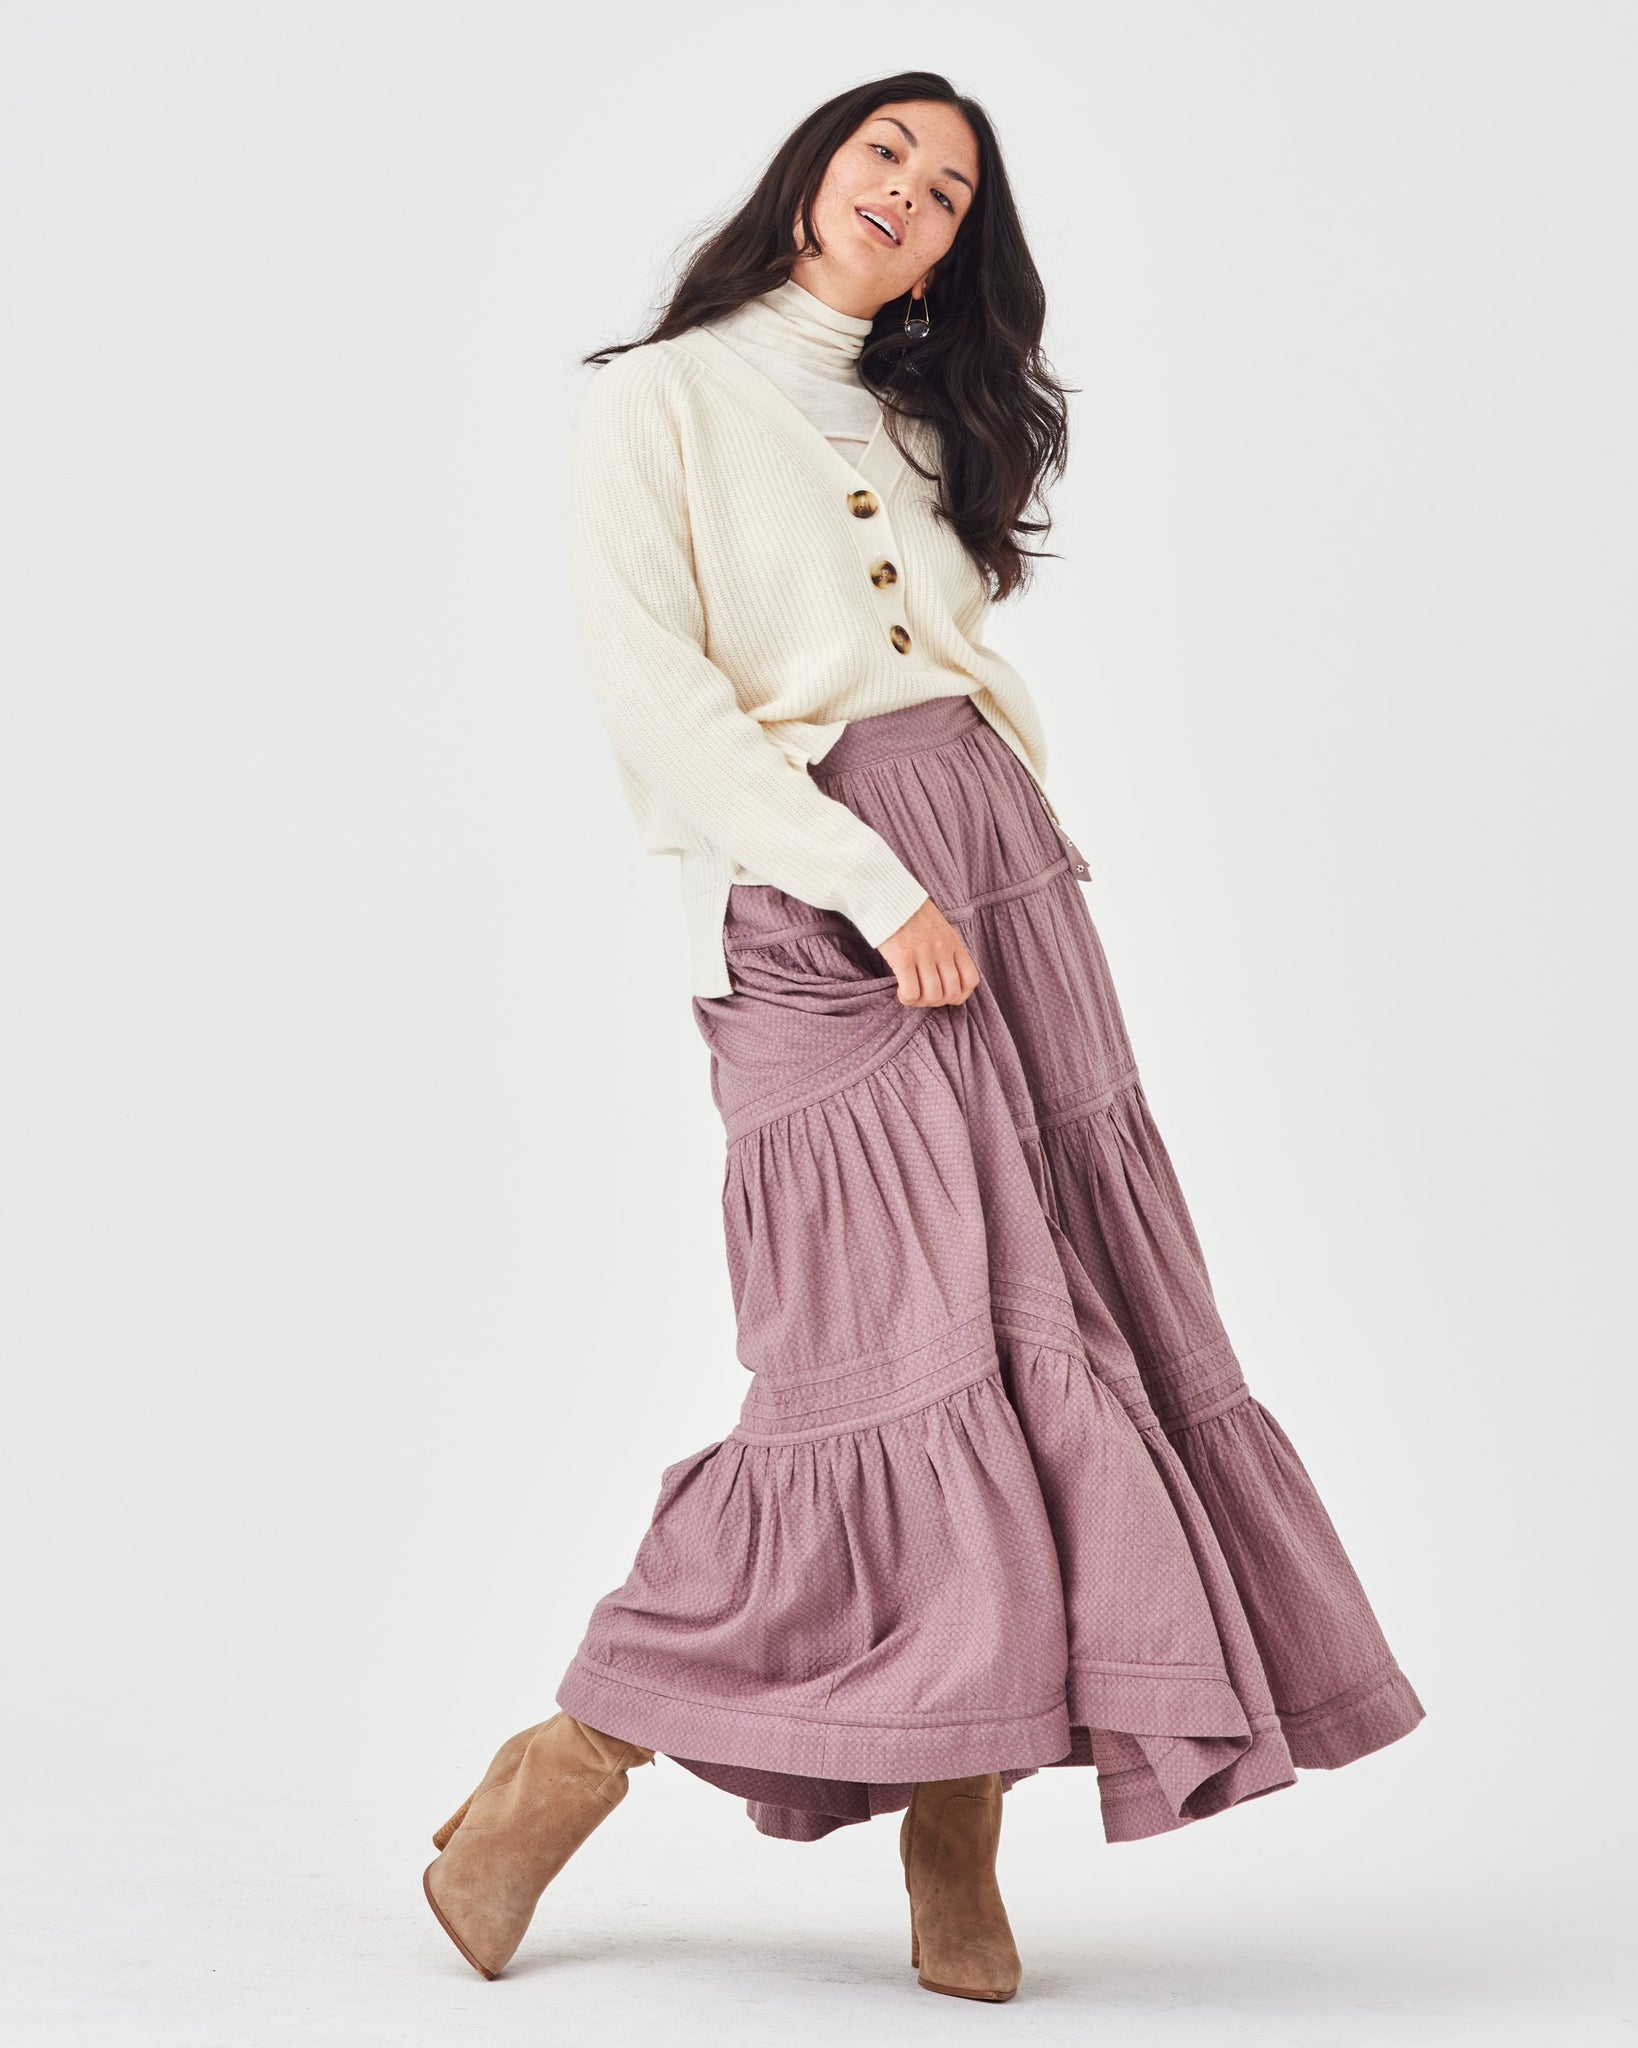 Harper Clarity Skirt